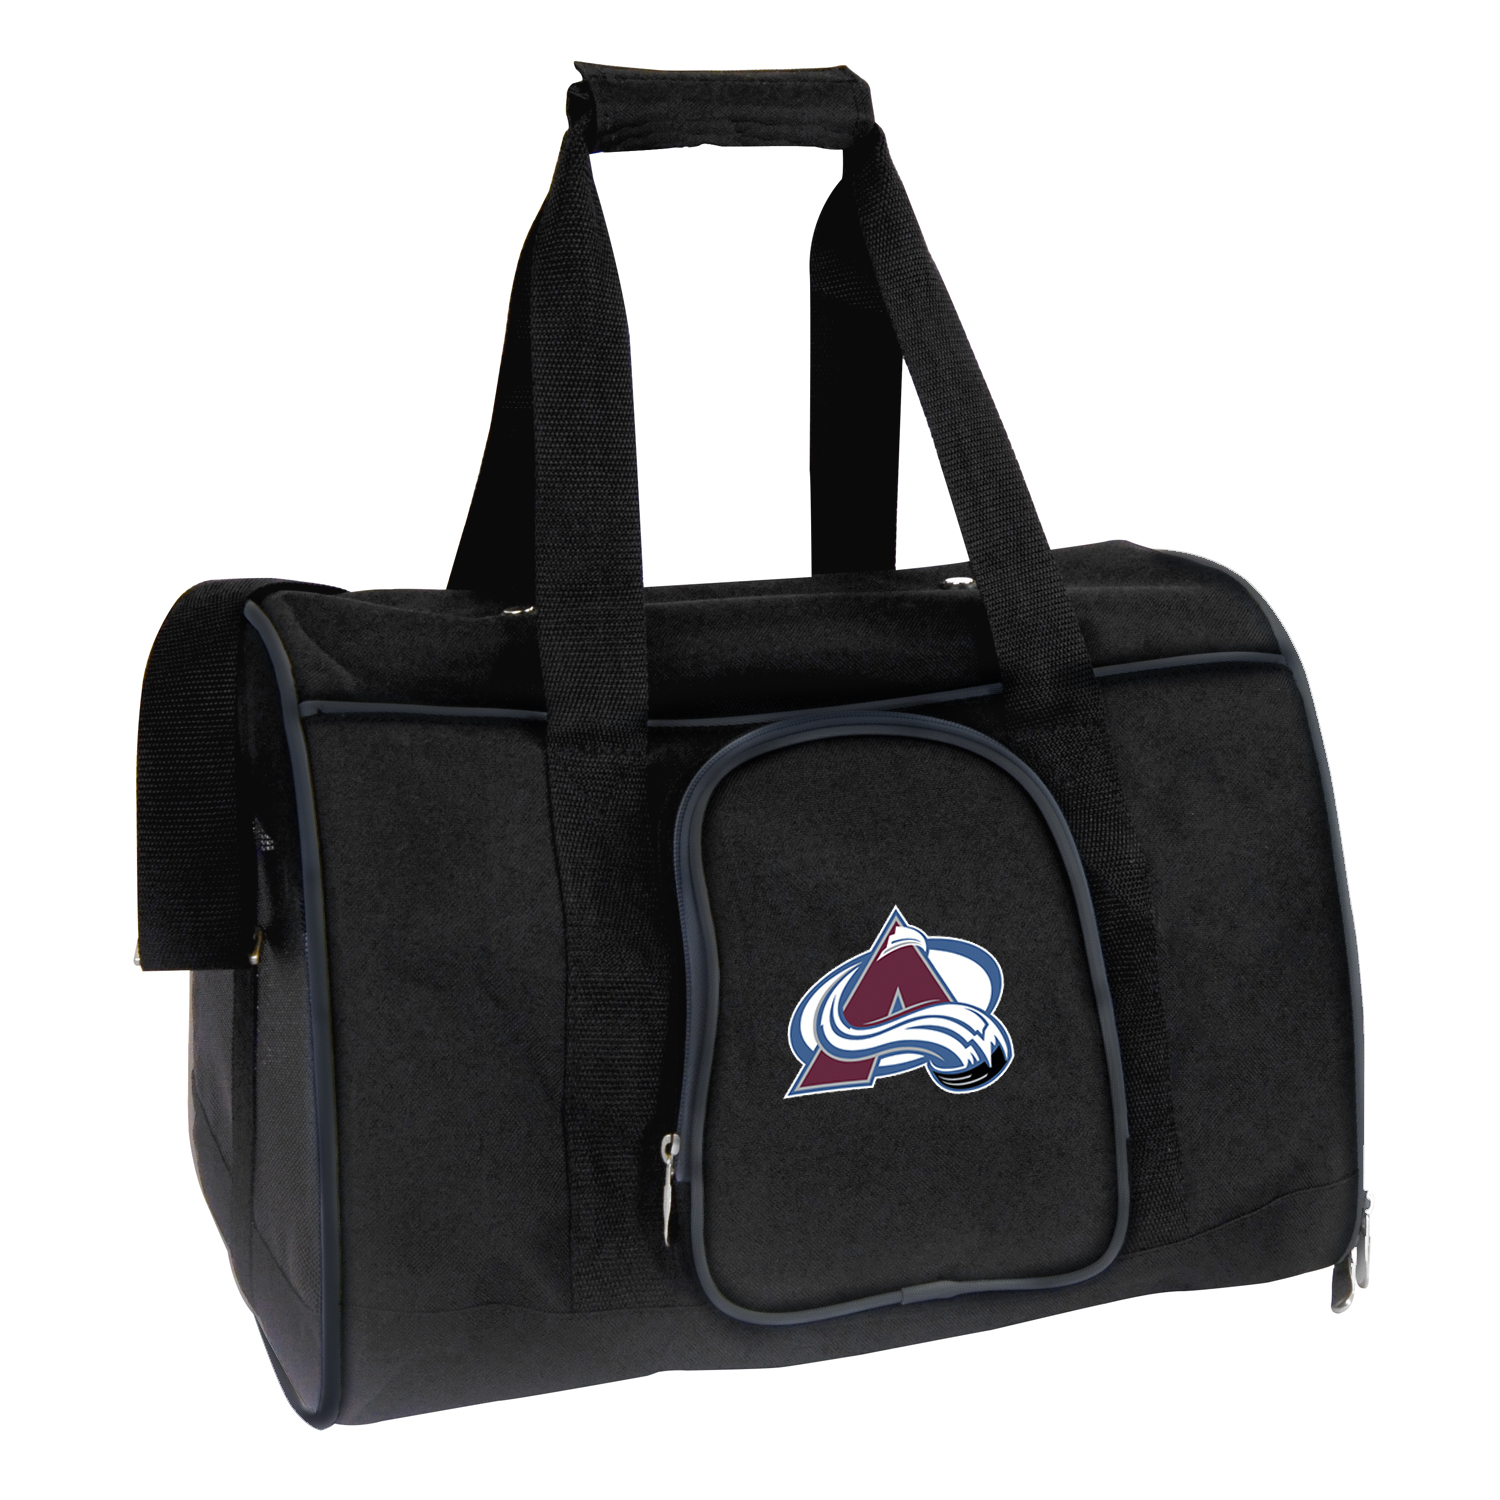 NHL Colorado Avalanche 16 in. Premium Pet Carrier